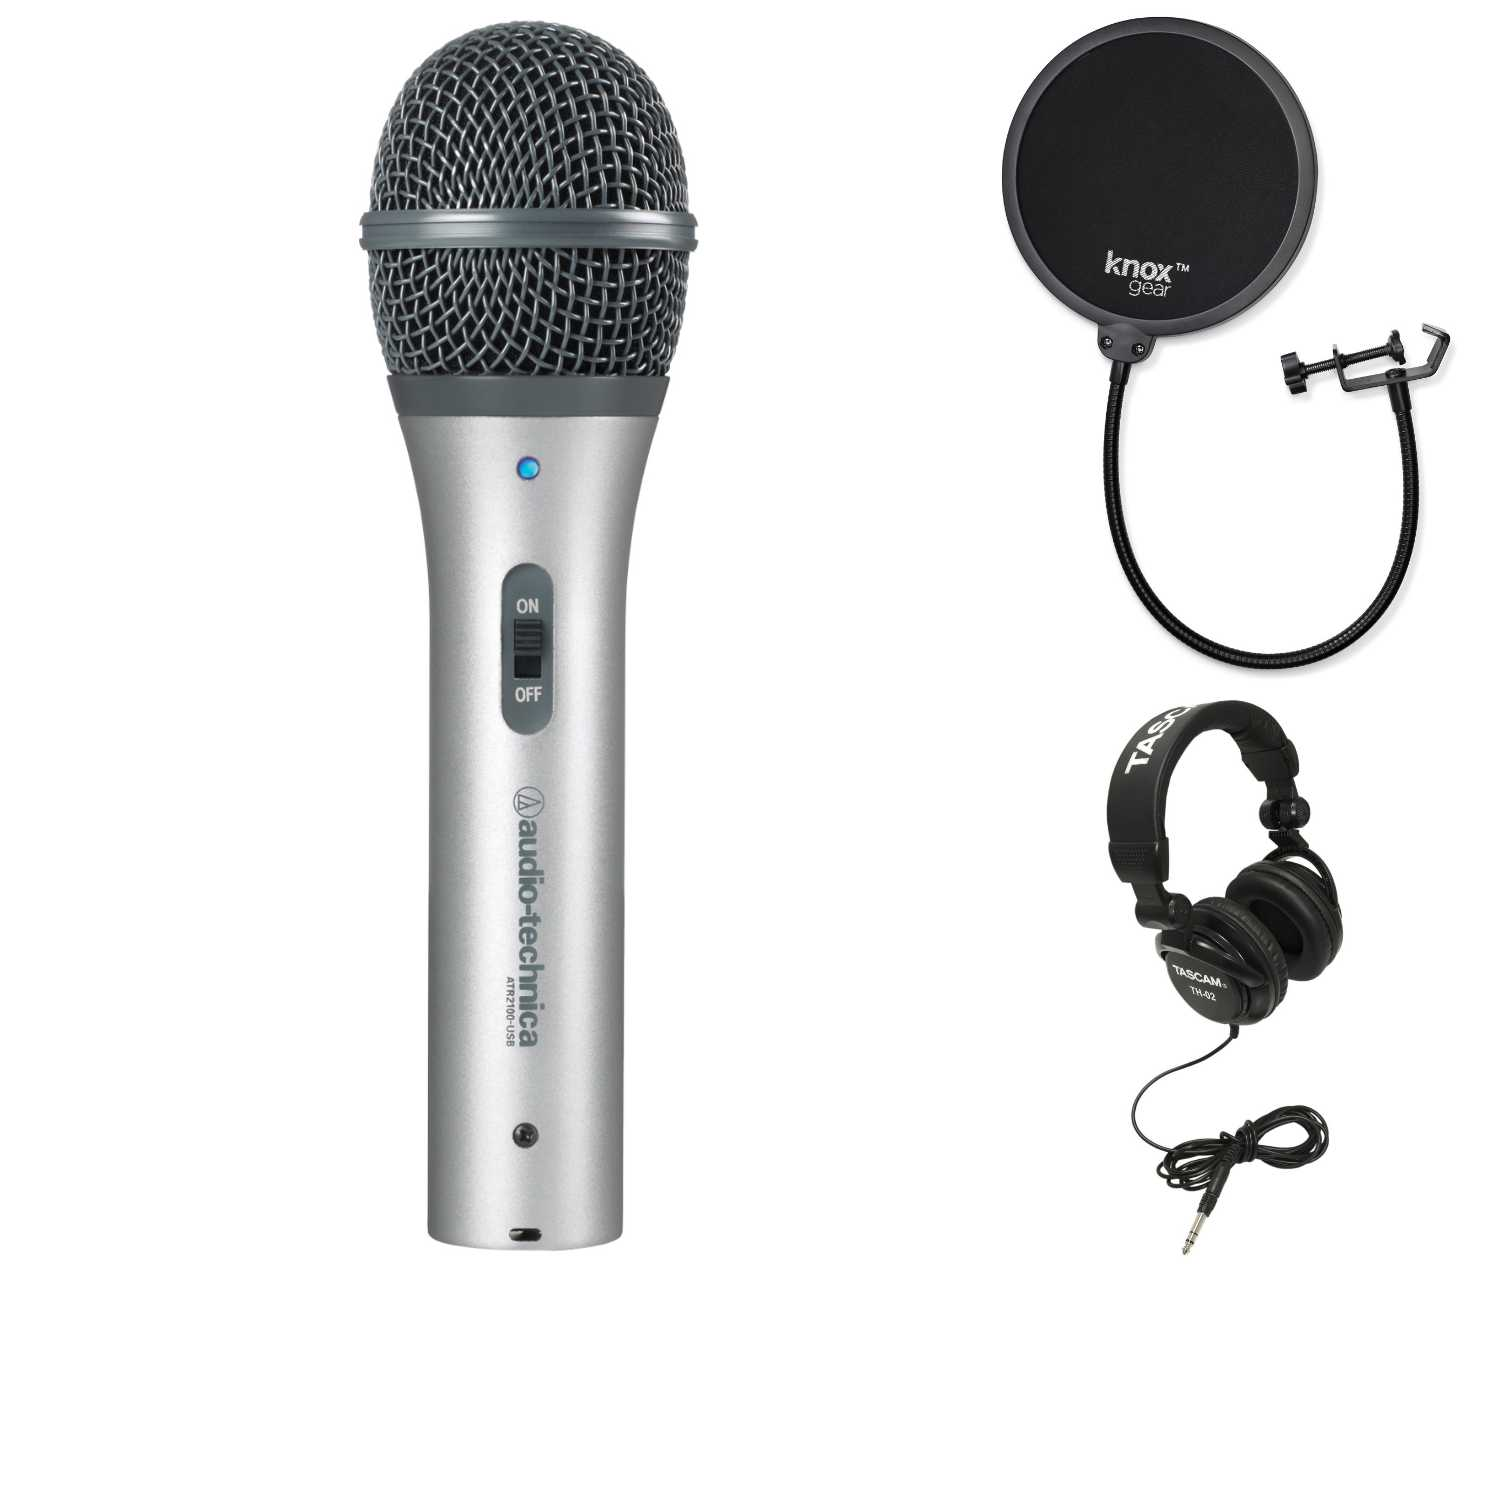 Audio-Technica ATR2100-USB Cardioid USB/XLR Microphone + Knox Gear Pop Filter + Headphones